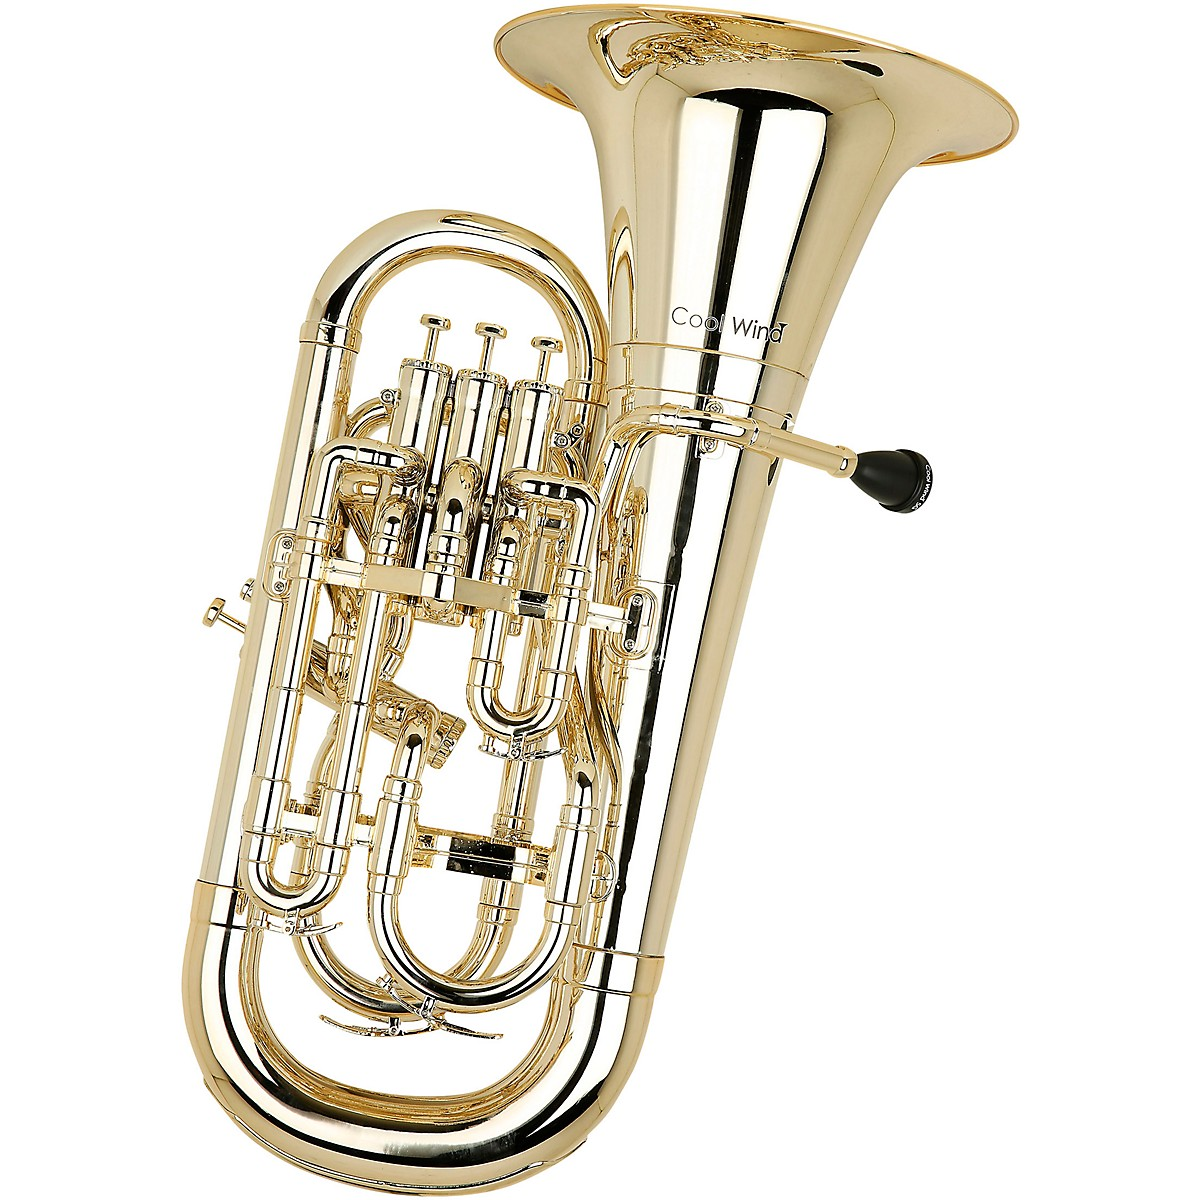 Cool Wind CEU-200 Metallic Series 4-Valve Plastic Euphonium